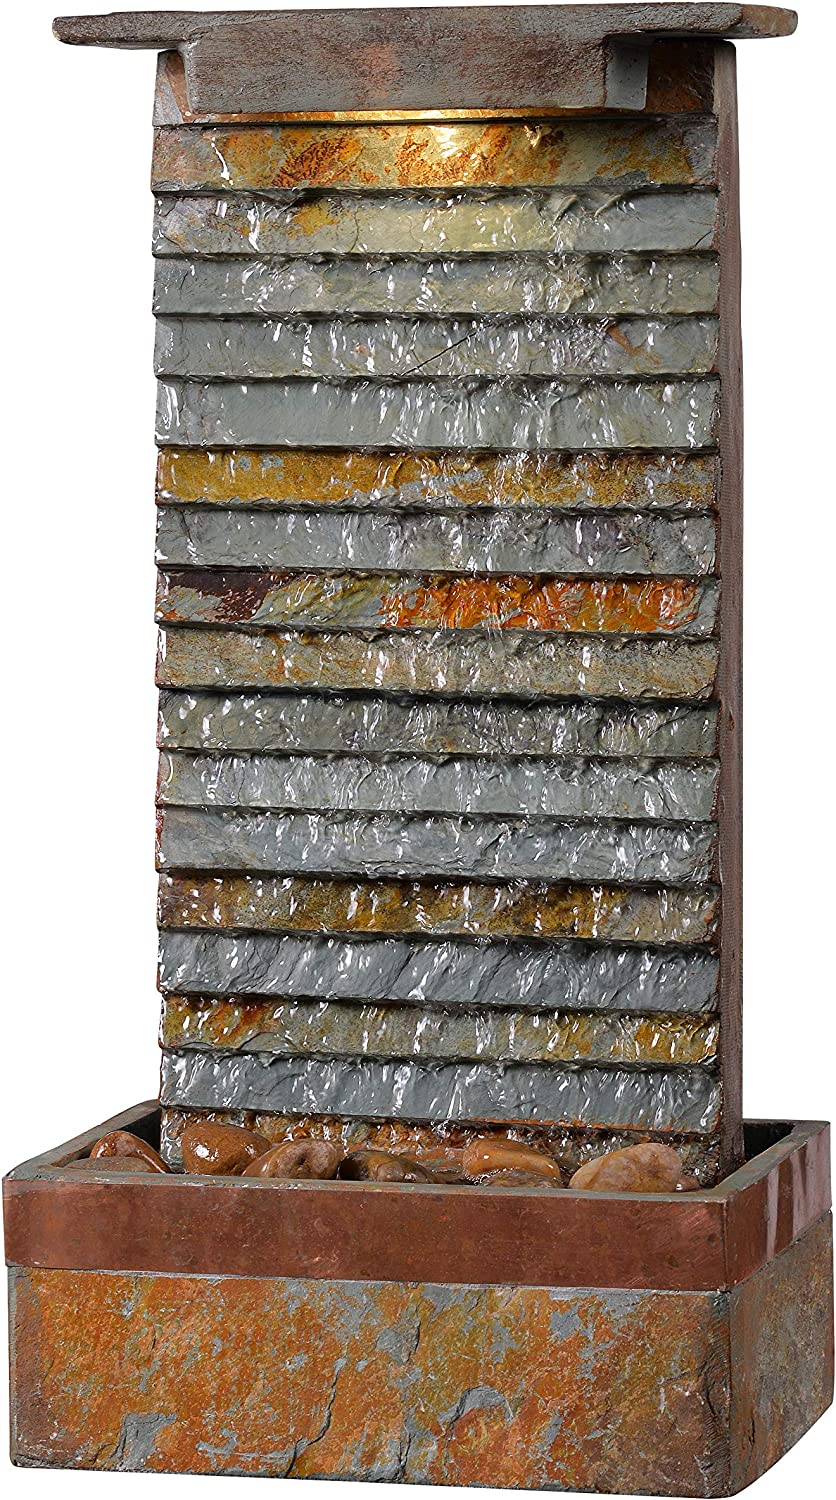 Kenroy Home Rustic Indoor/Outdoor Table Fountain,19 Inch Height, 10 Inch Width, 6 Inch Ext. with Slate and Copper